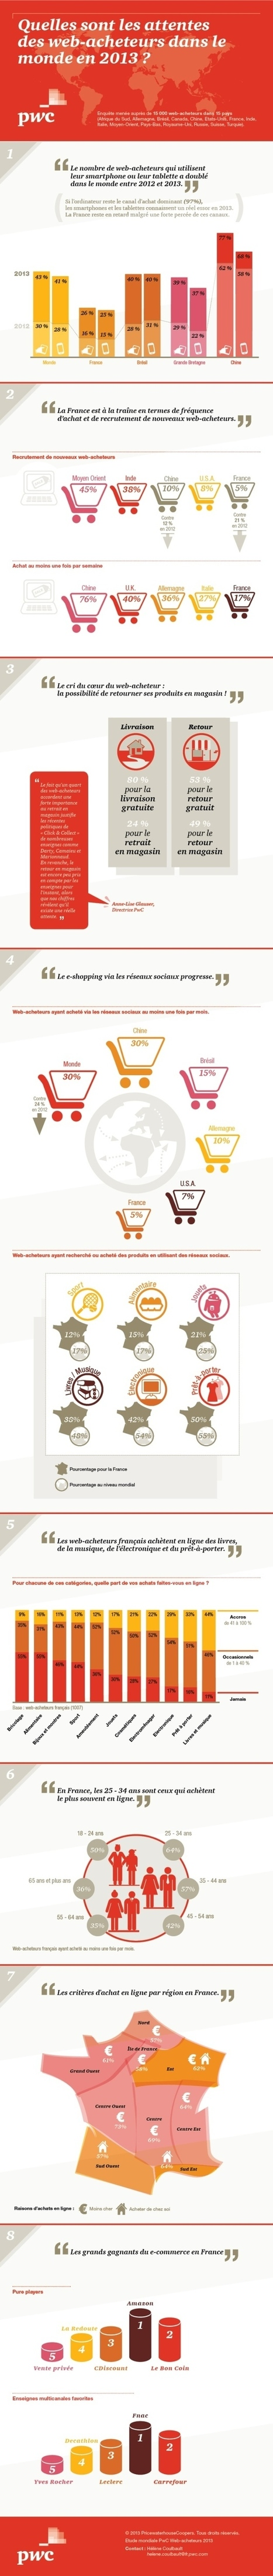 Infographie : Les comportements d'achat en ligne dans le monde | Time to Learn | Scoop.it